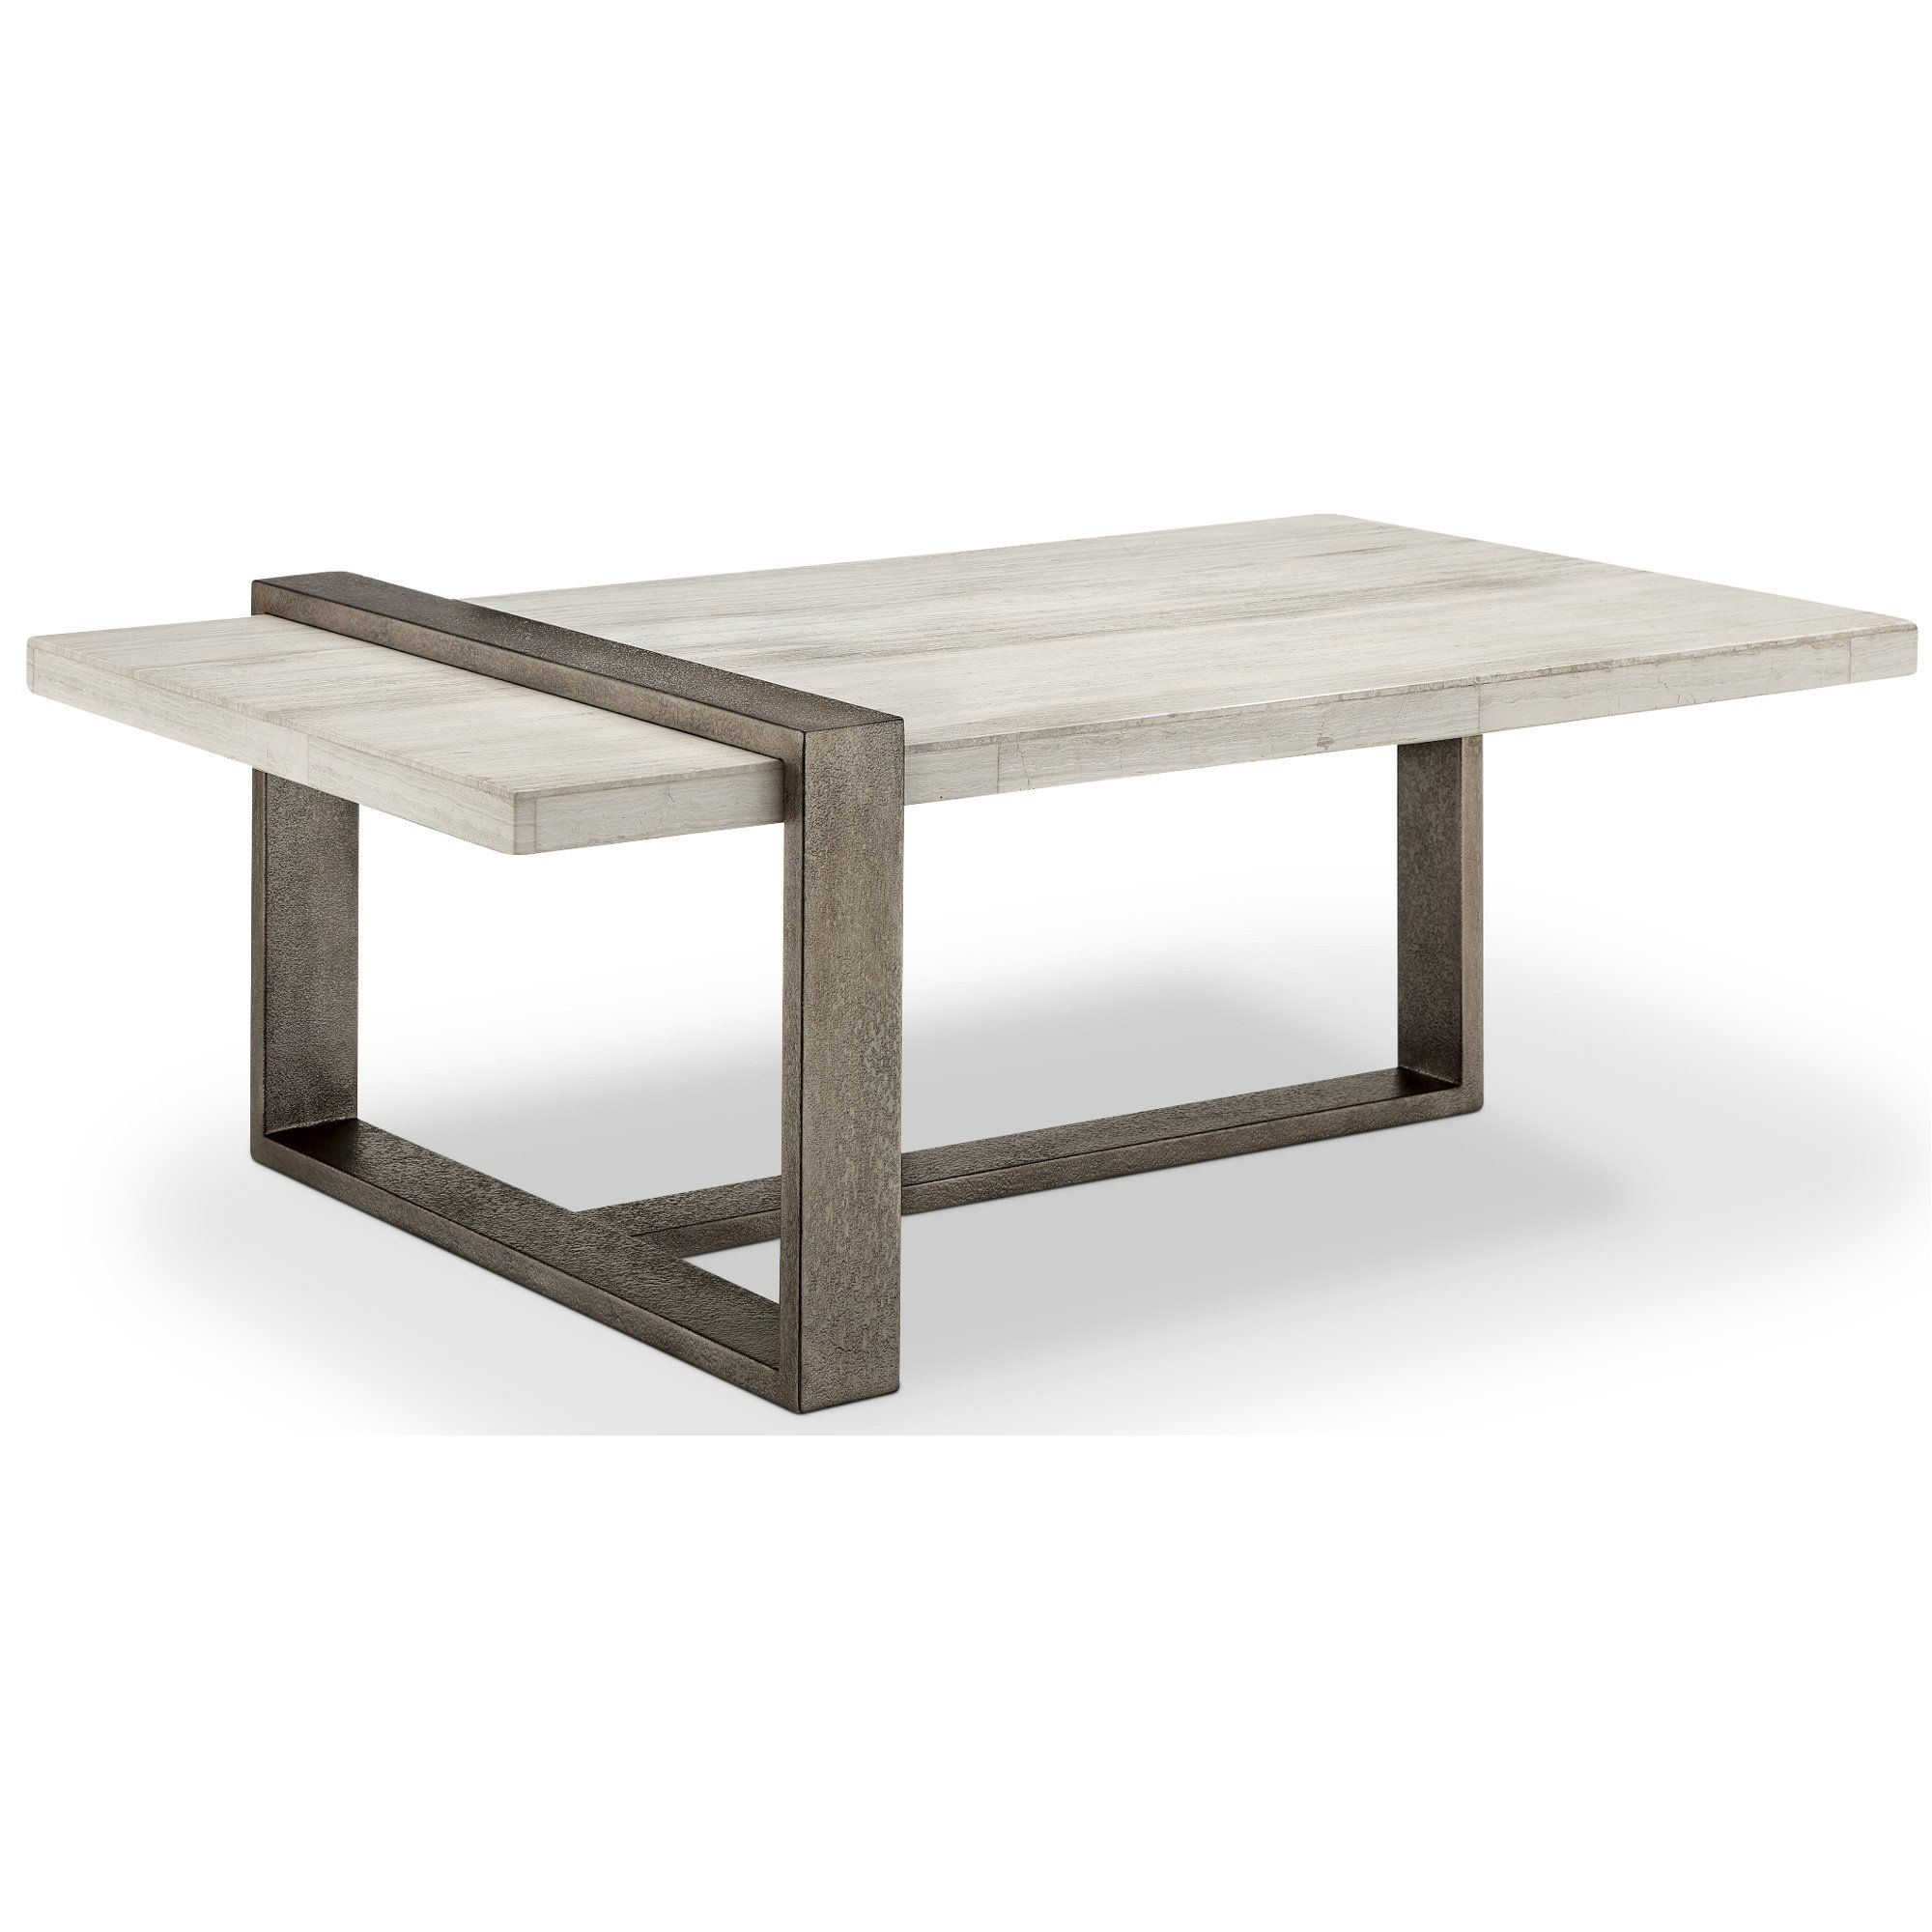 Marble Ultra Modern Coffee Table Wiltshire Coffee Table Modern Coffee Tables Coffee Table Square